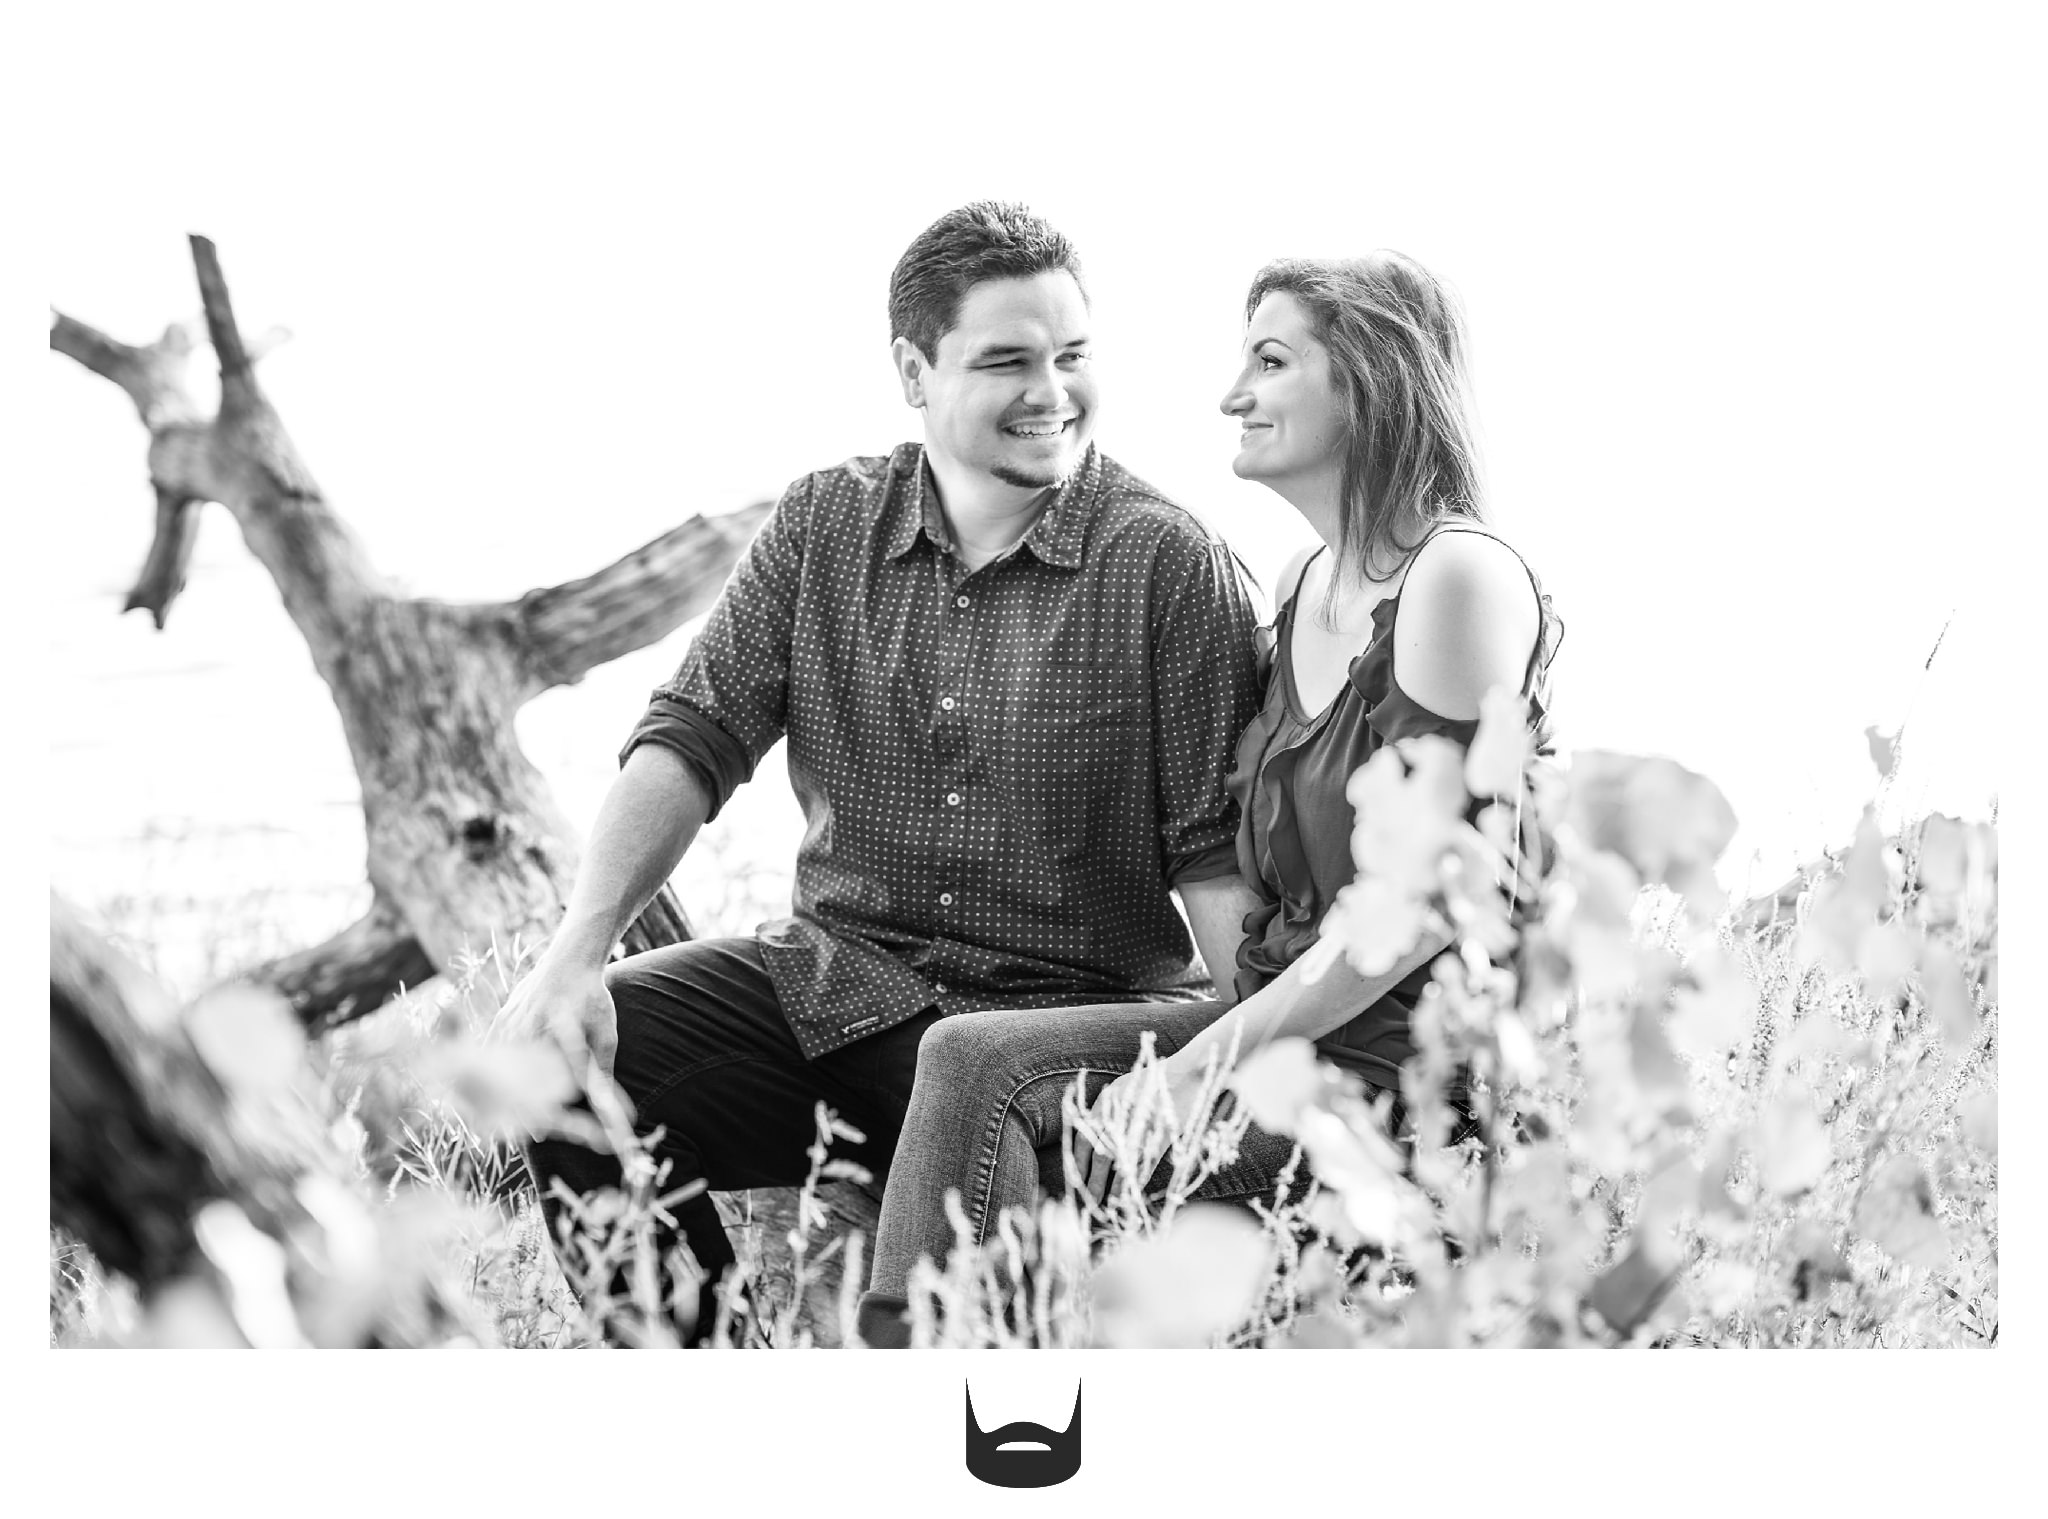 des moines engagement photography love